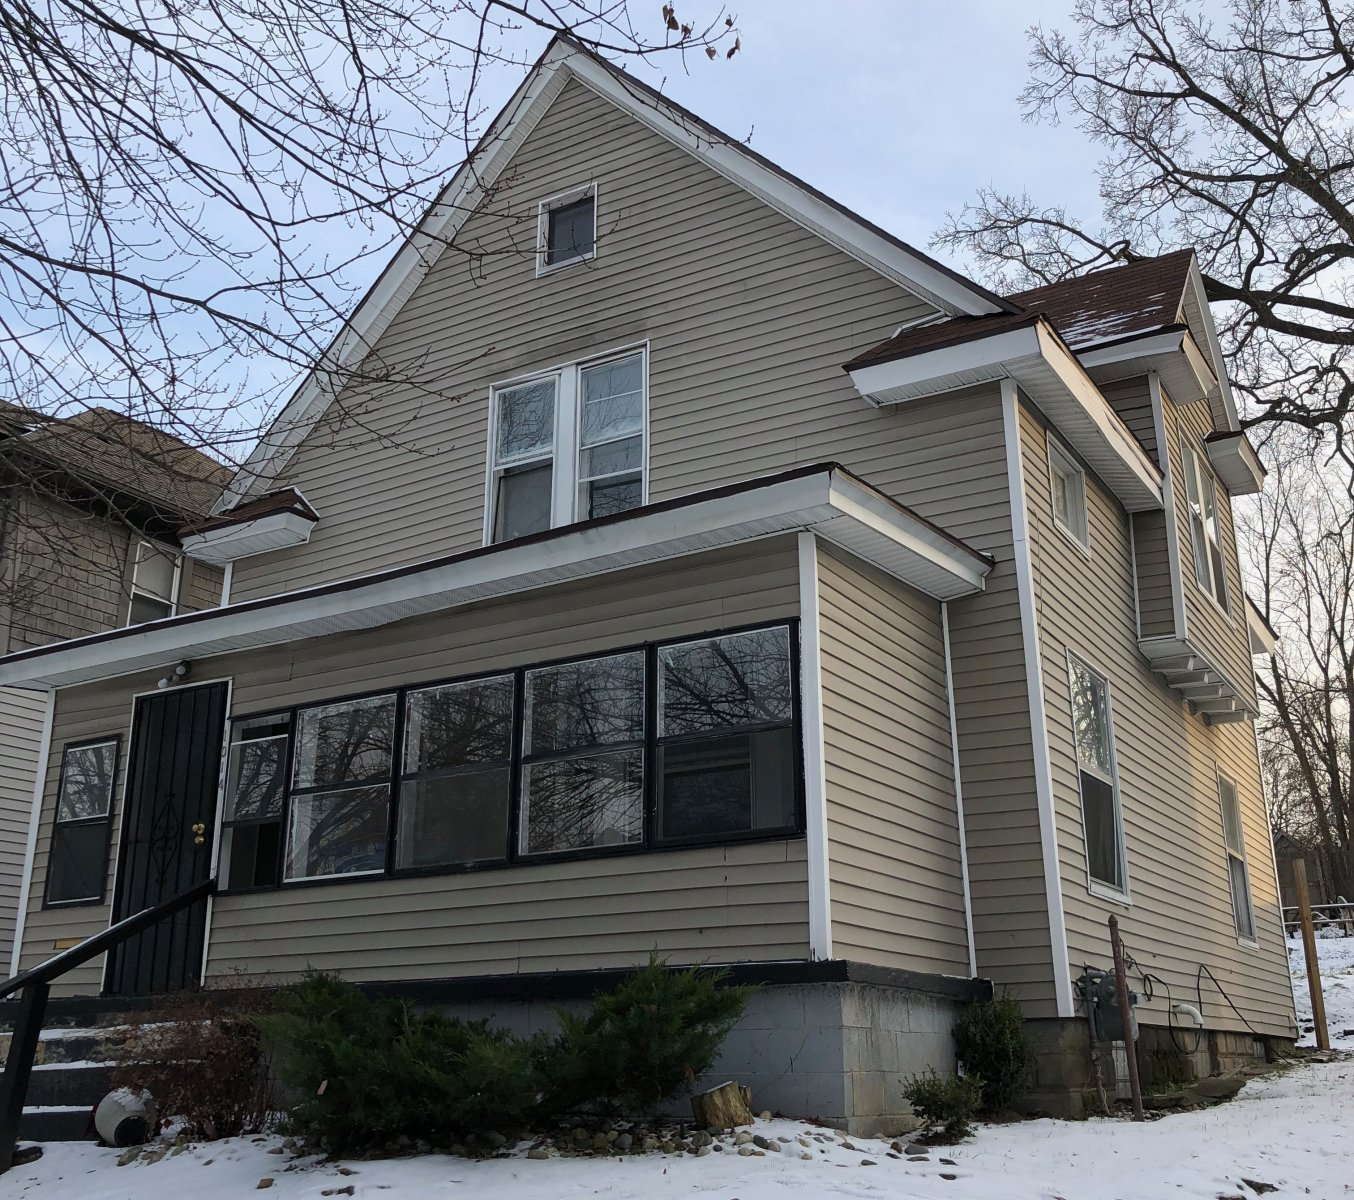 Grand Rapids Rental House in the Winter